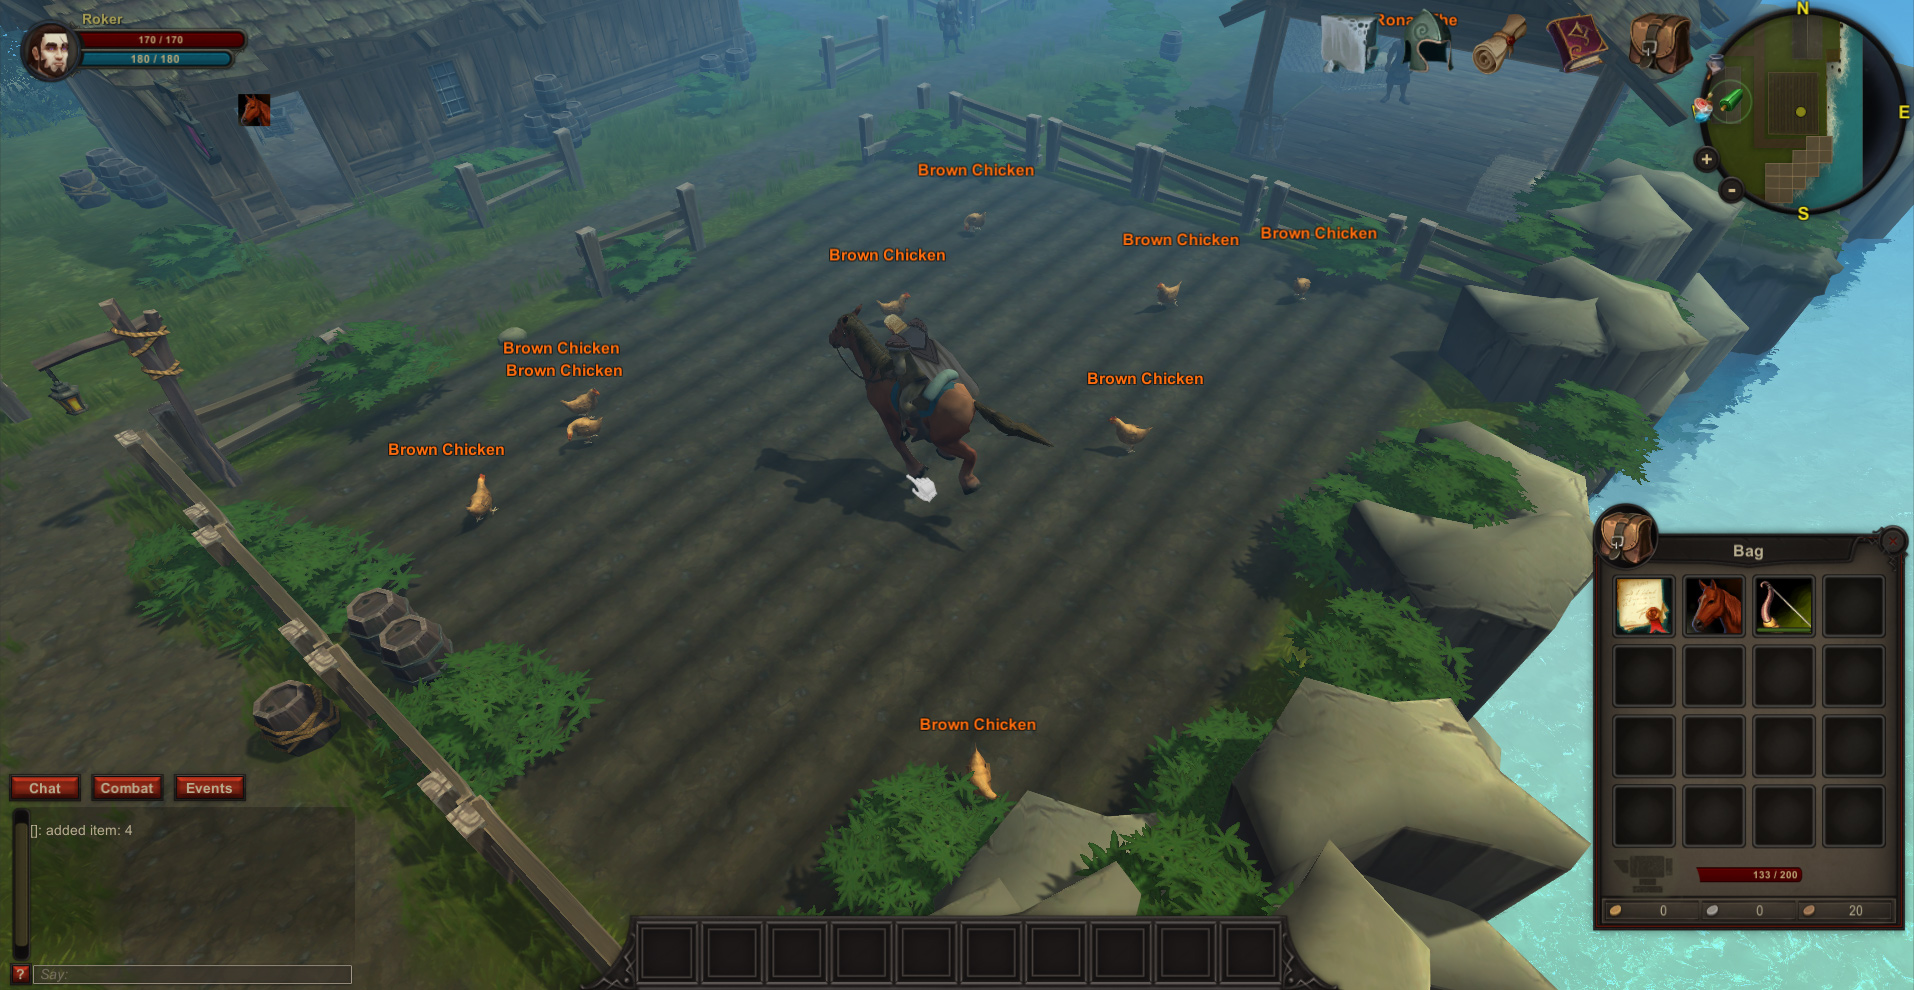 MMORPG sandbox Arcfall is headed to Steam early access